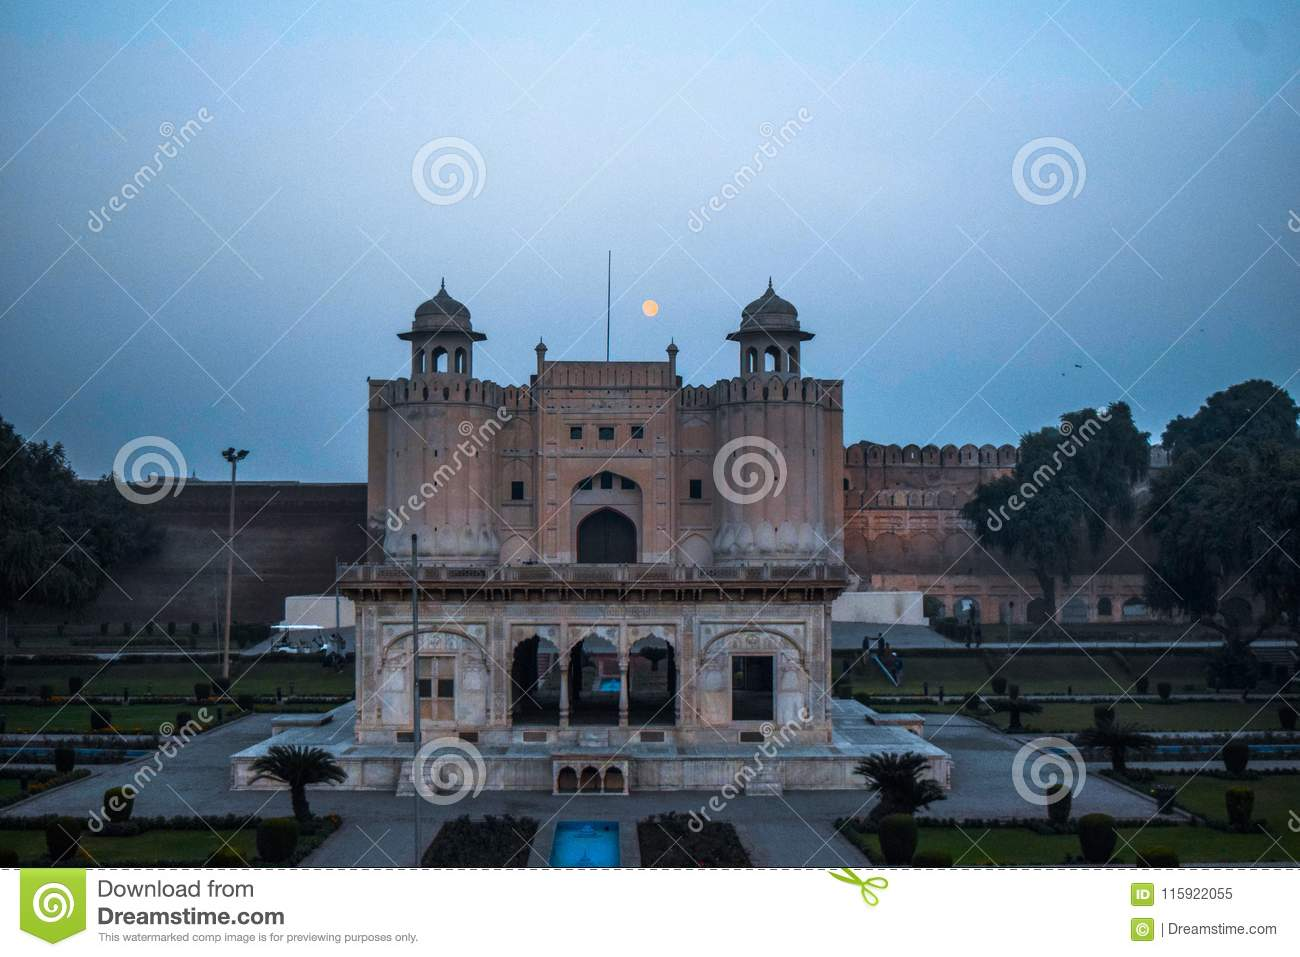 Lahorefort met Iqbal Tomb